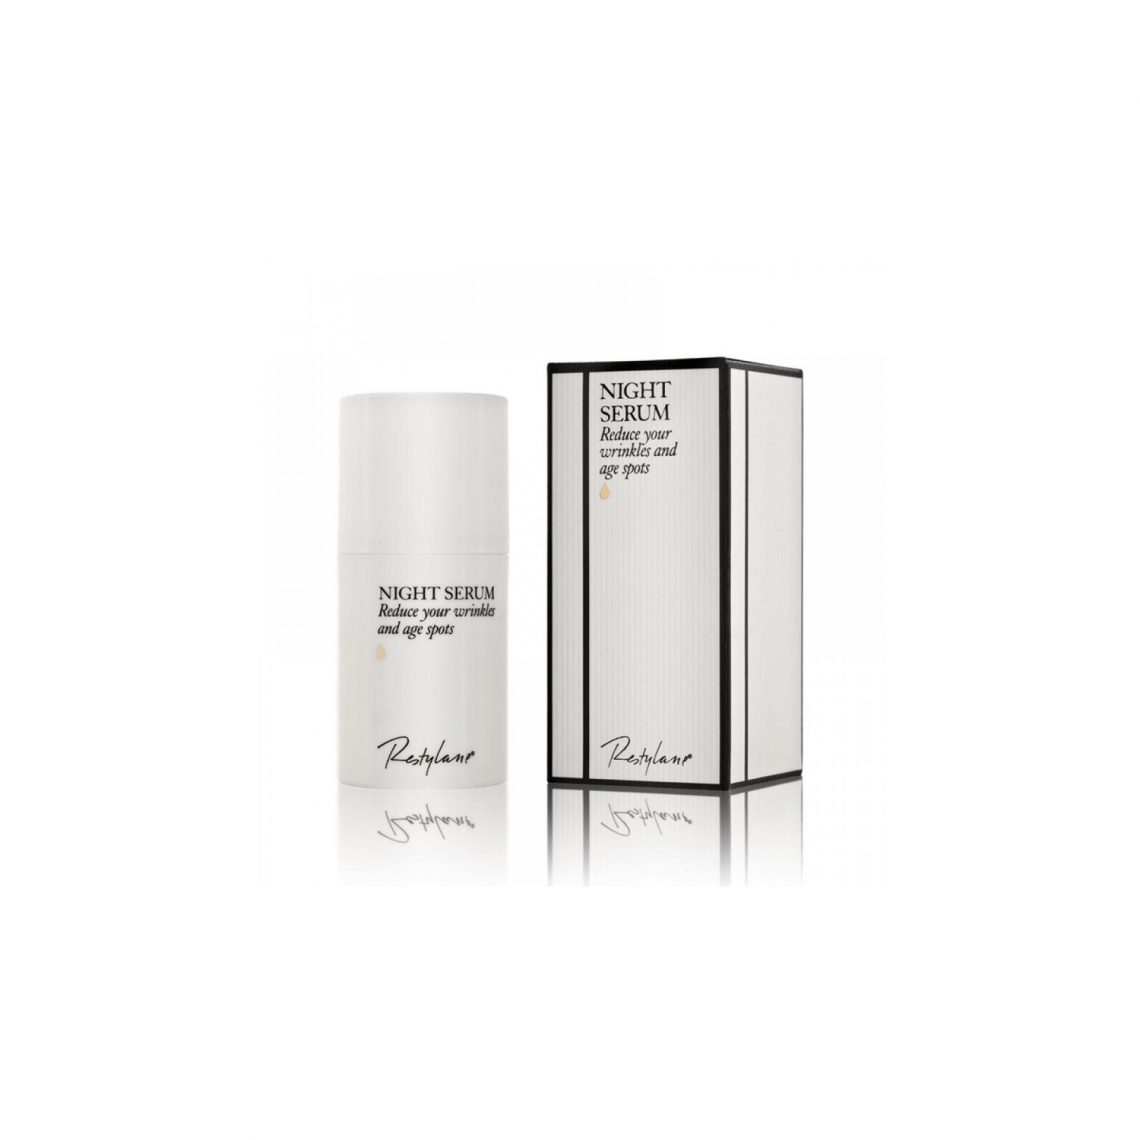 Restylane Night Serum